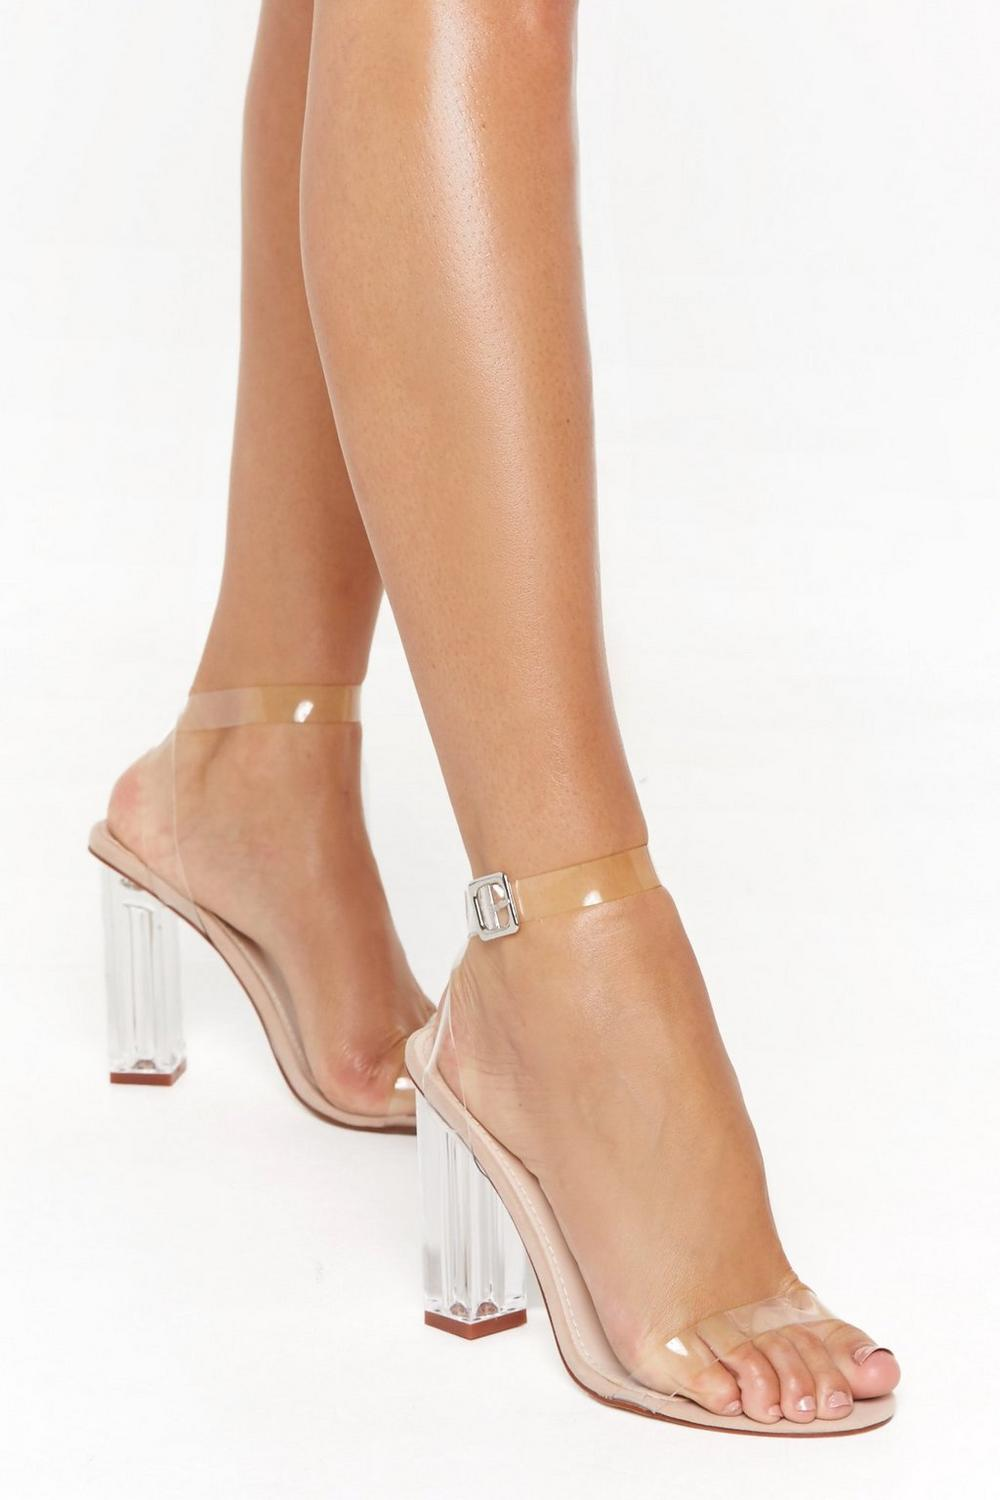 ed50e5a444a01 Let's Be Clear Heel | Shop Clothes at Nasty Gal!